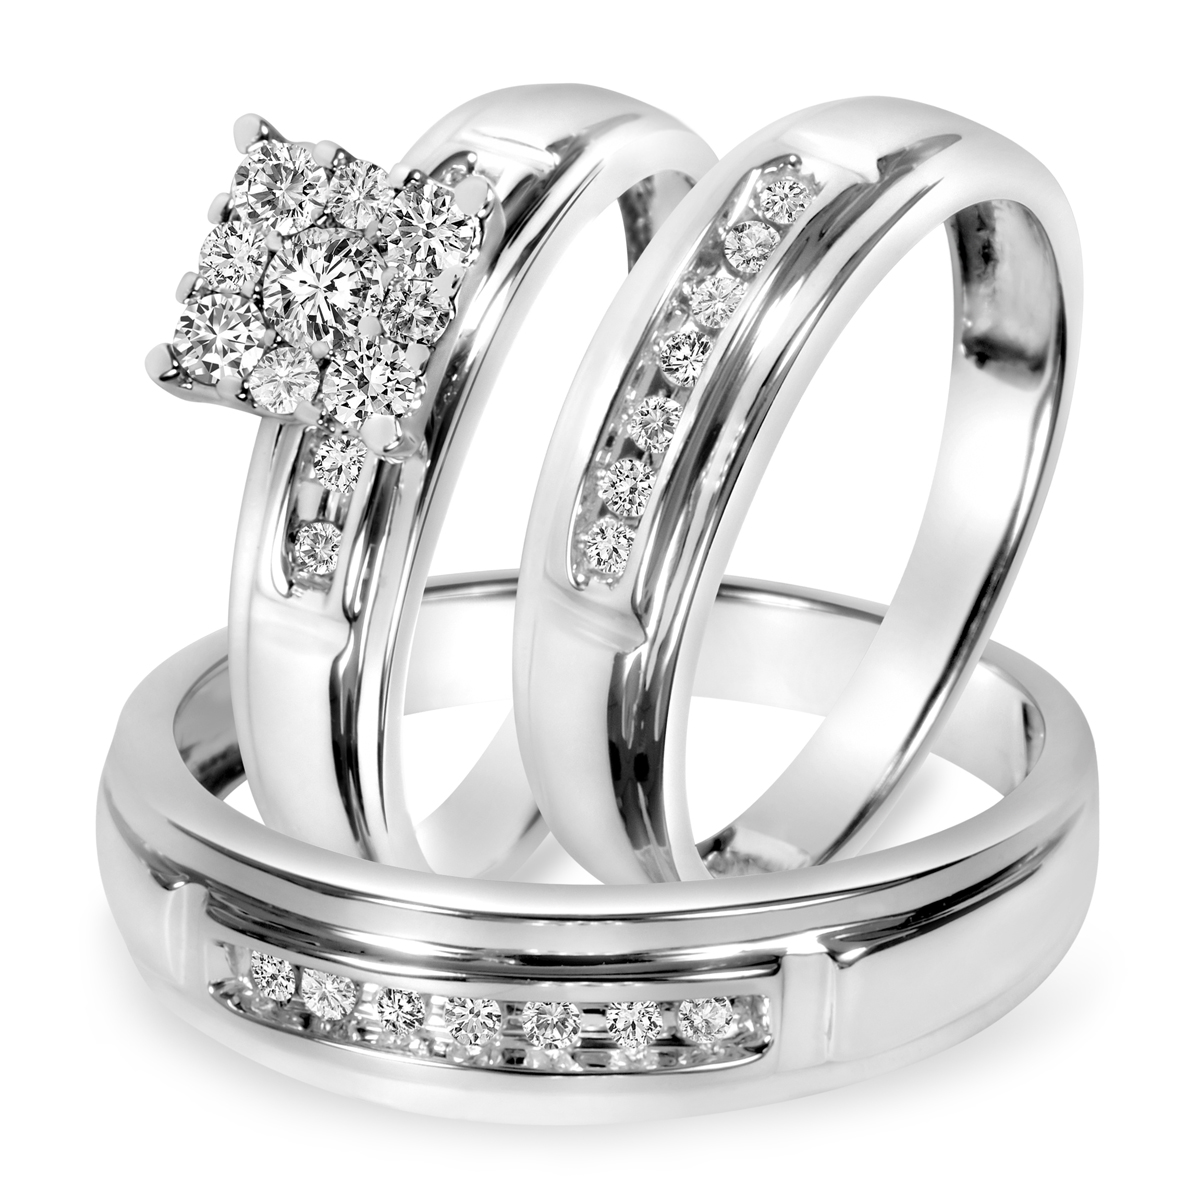 Wedding Rings Sets For Him And Her.1 2 Ct T W Diamond Trio Matching Wedding Ring Set 14k White Gold